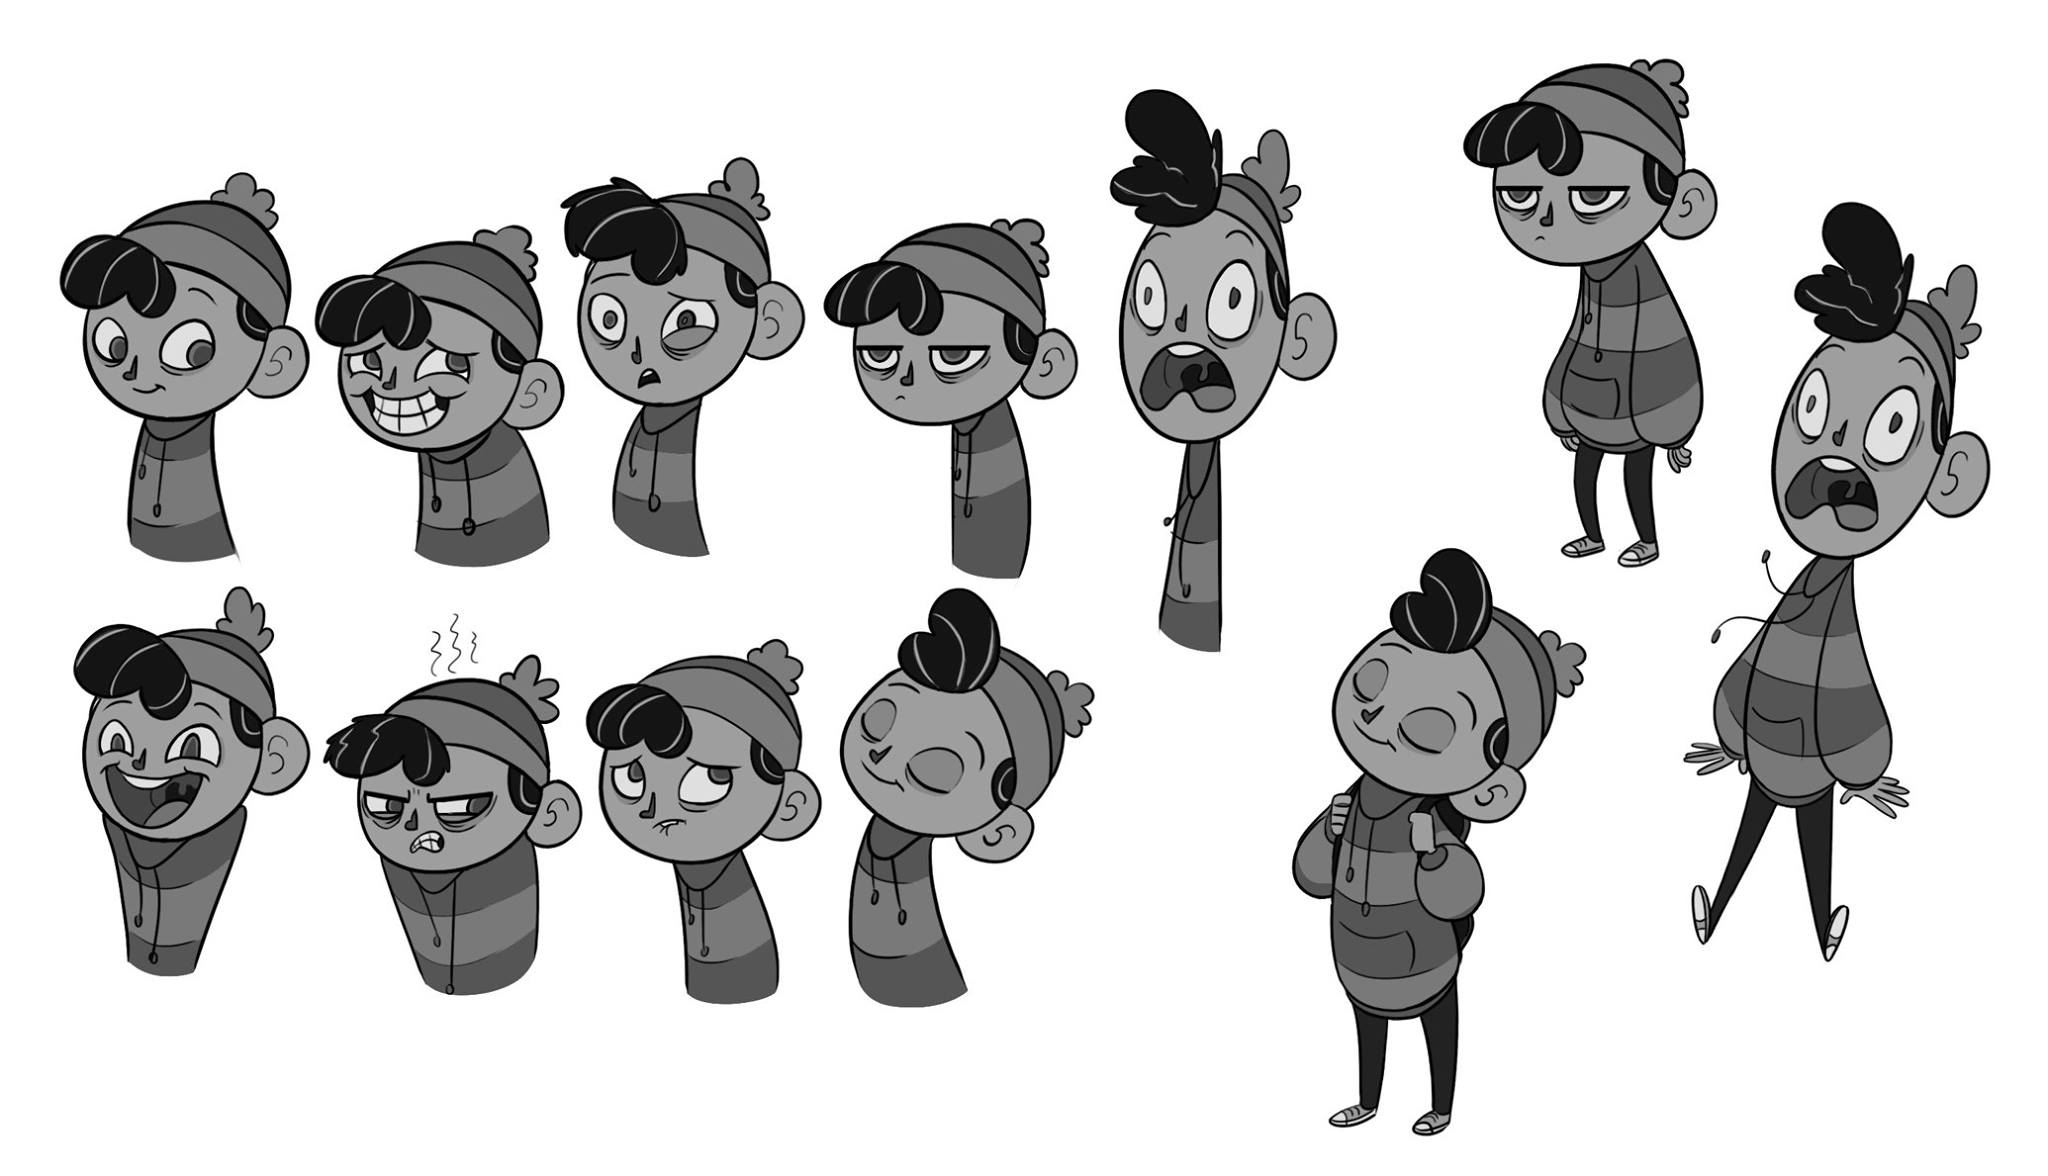 riley expressions value.jpg